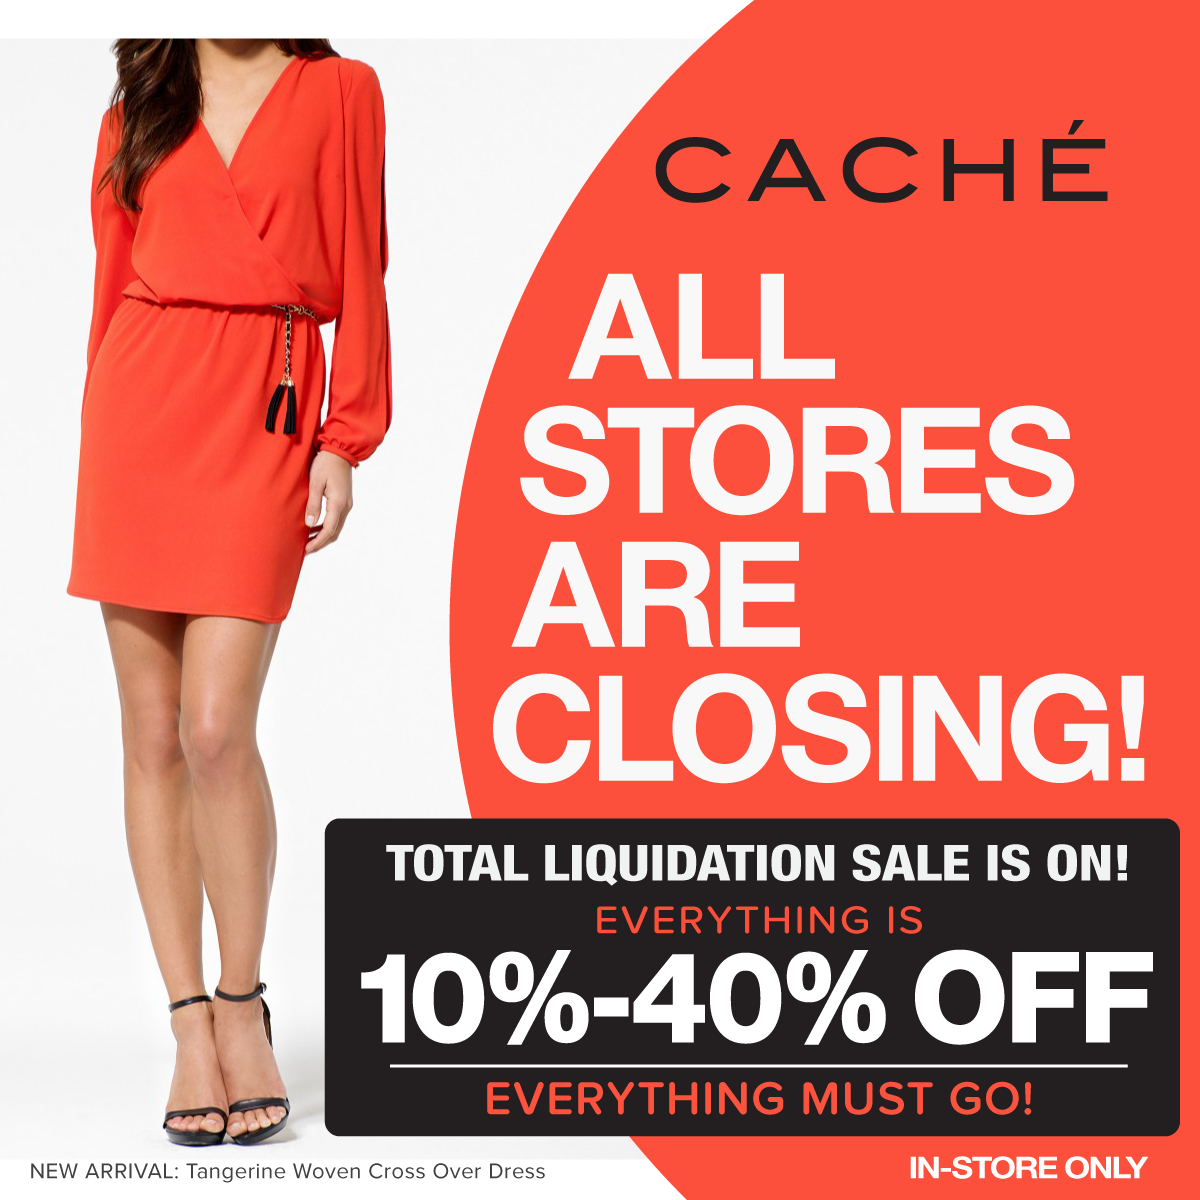 Caché To Liquidate, Close All Remaining Stores